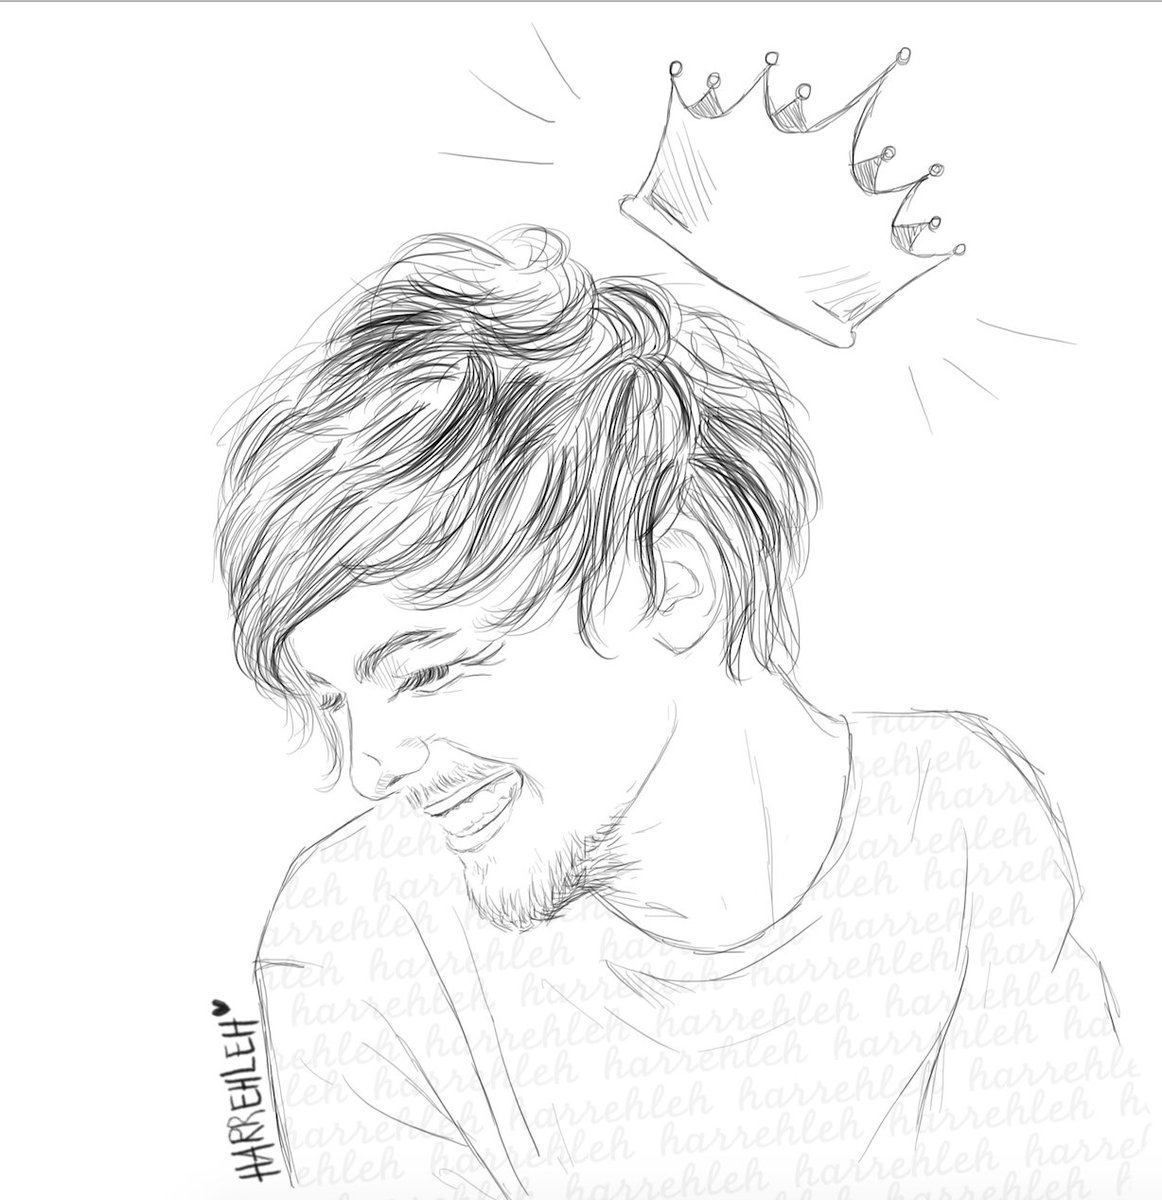 Excited to see @Louis_Tomlinson return to @TheXFactor as a judge? 🎨 by Laura (harrehleh on Instagram) Submit your fan art via our #BRITs @tumblr 👉 brits.tumblr.com/submit